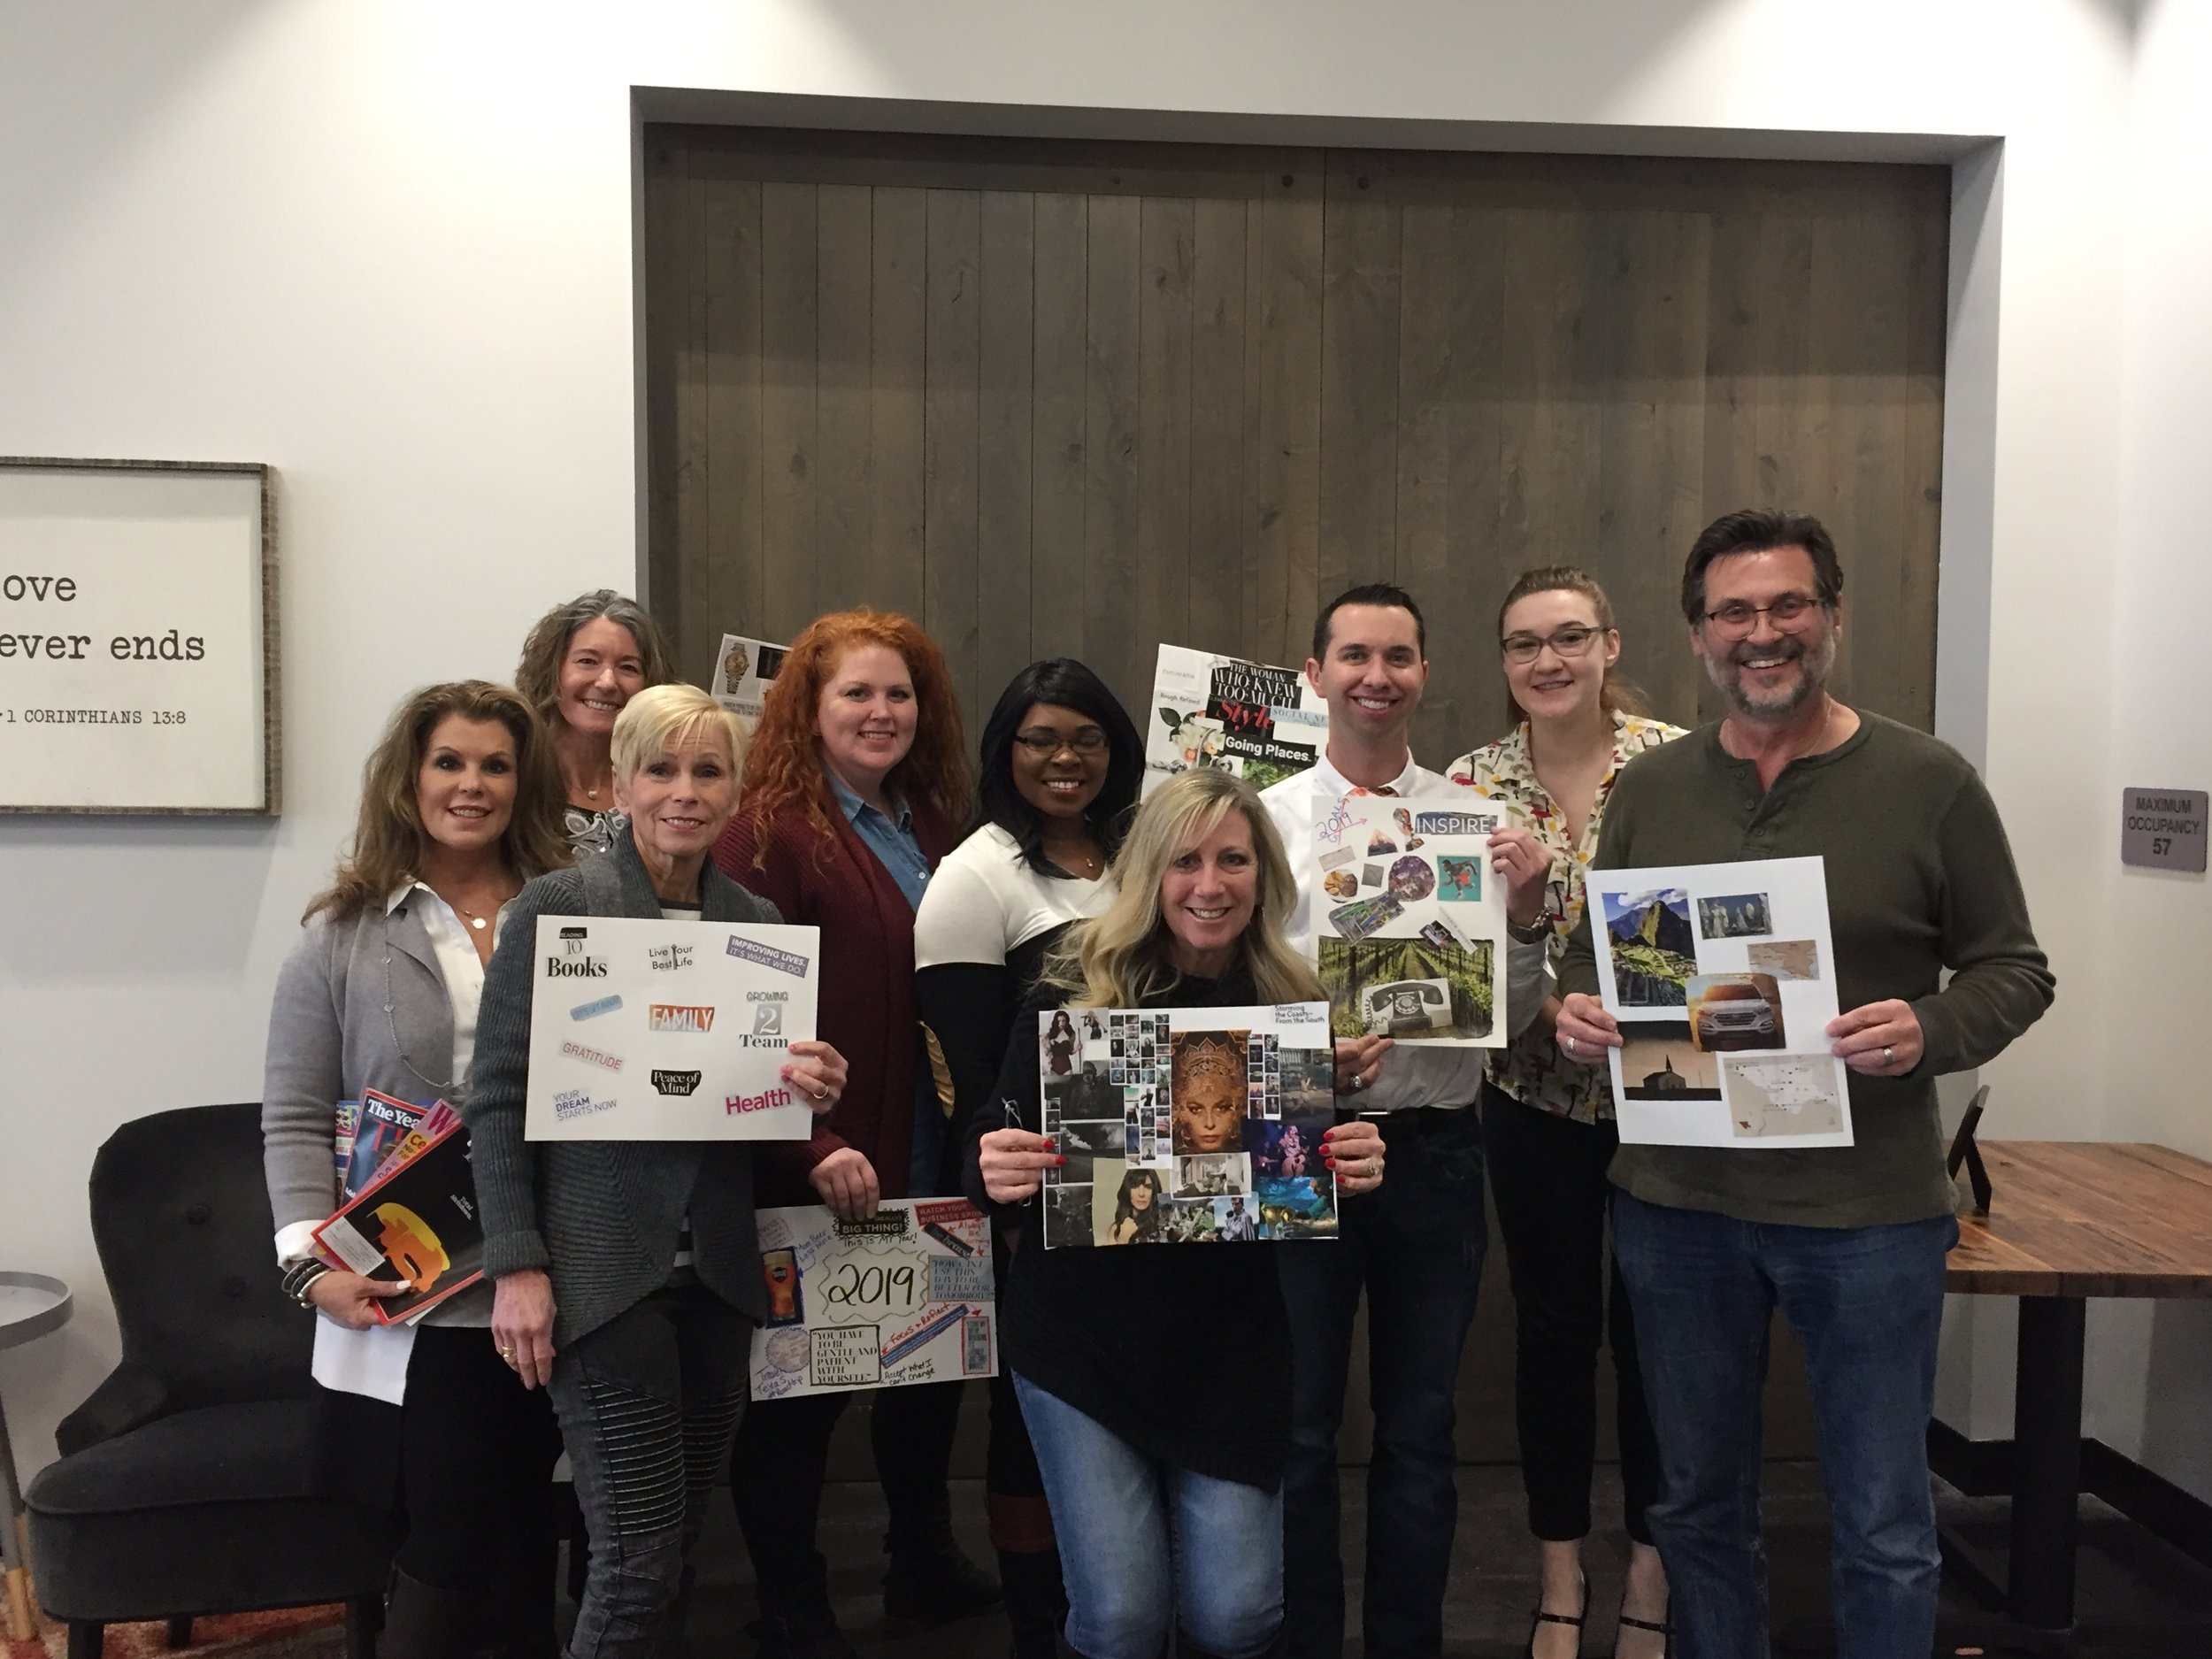 Goal Setting & Vision Board Workshop by Out of the box, LLC